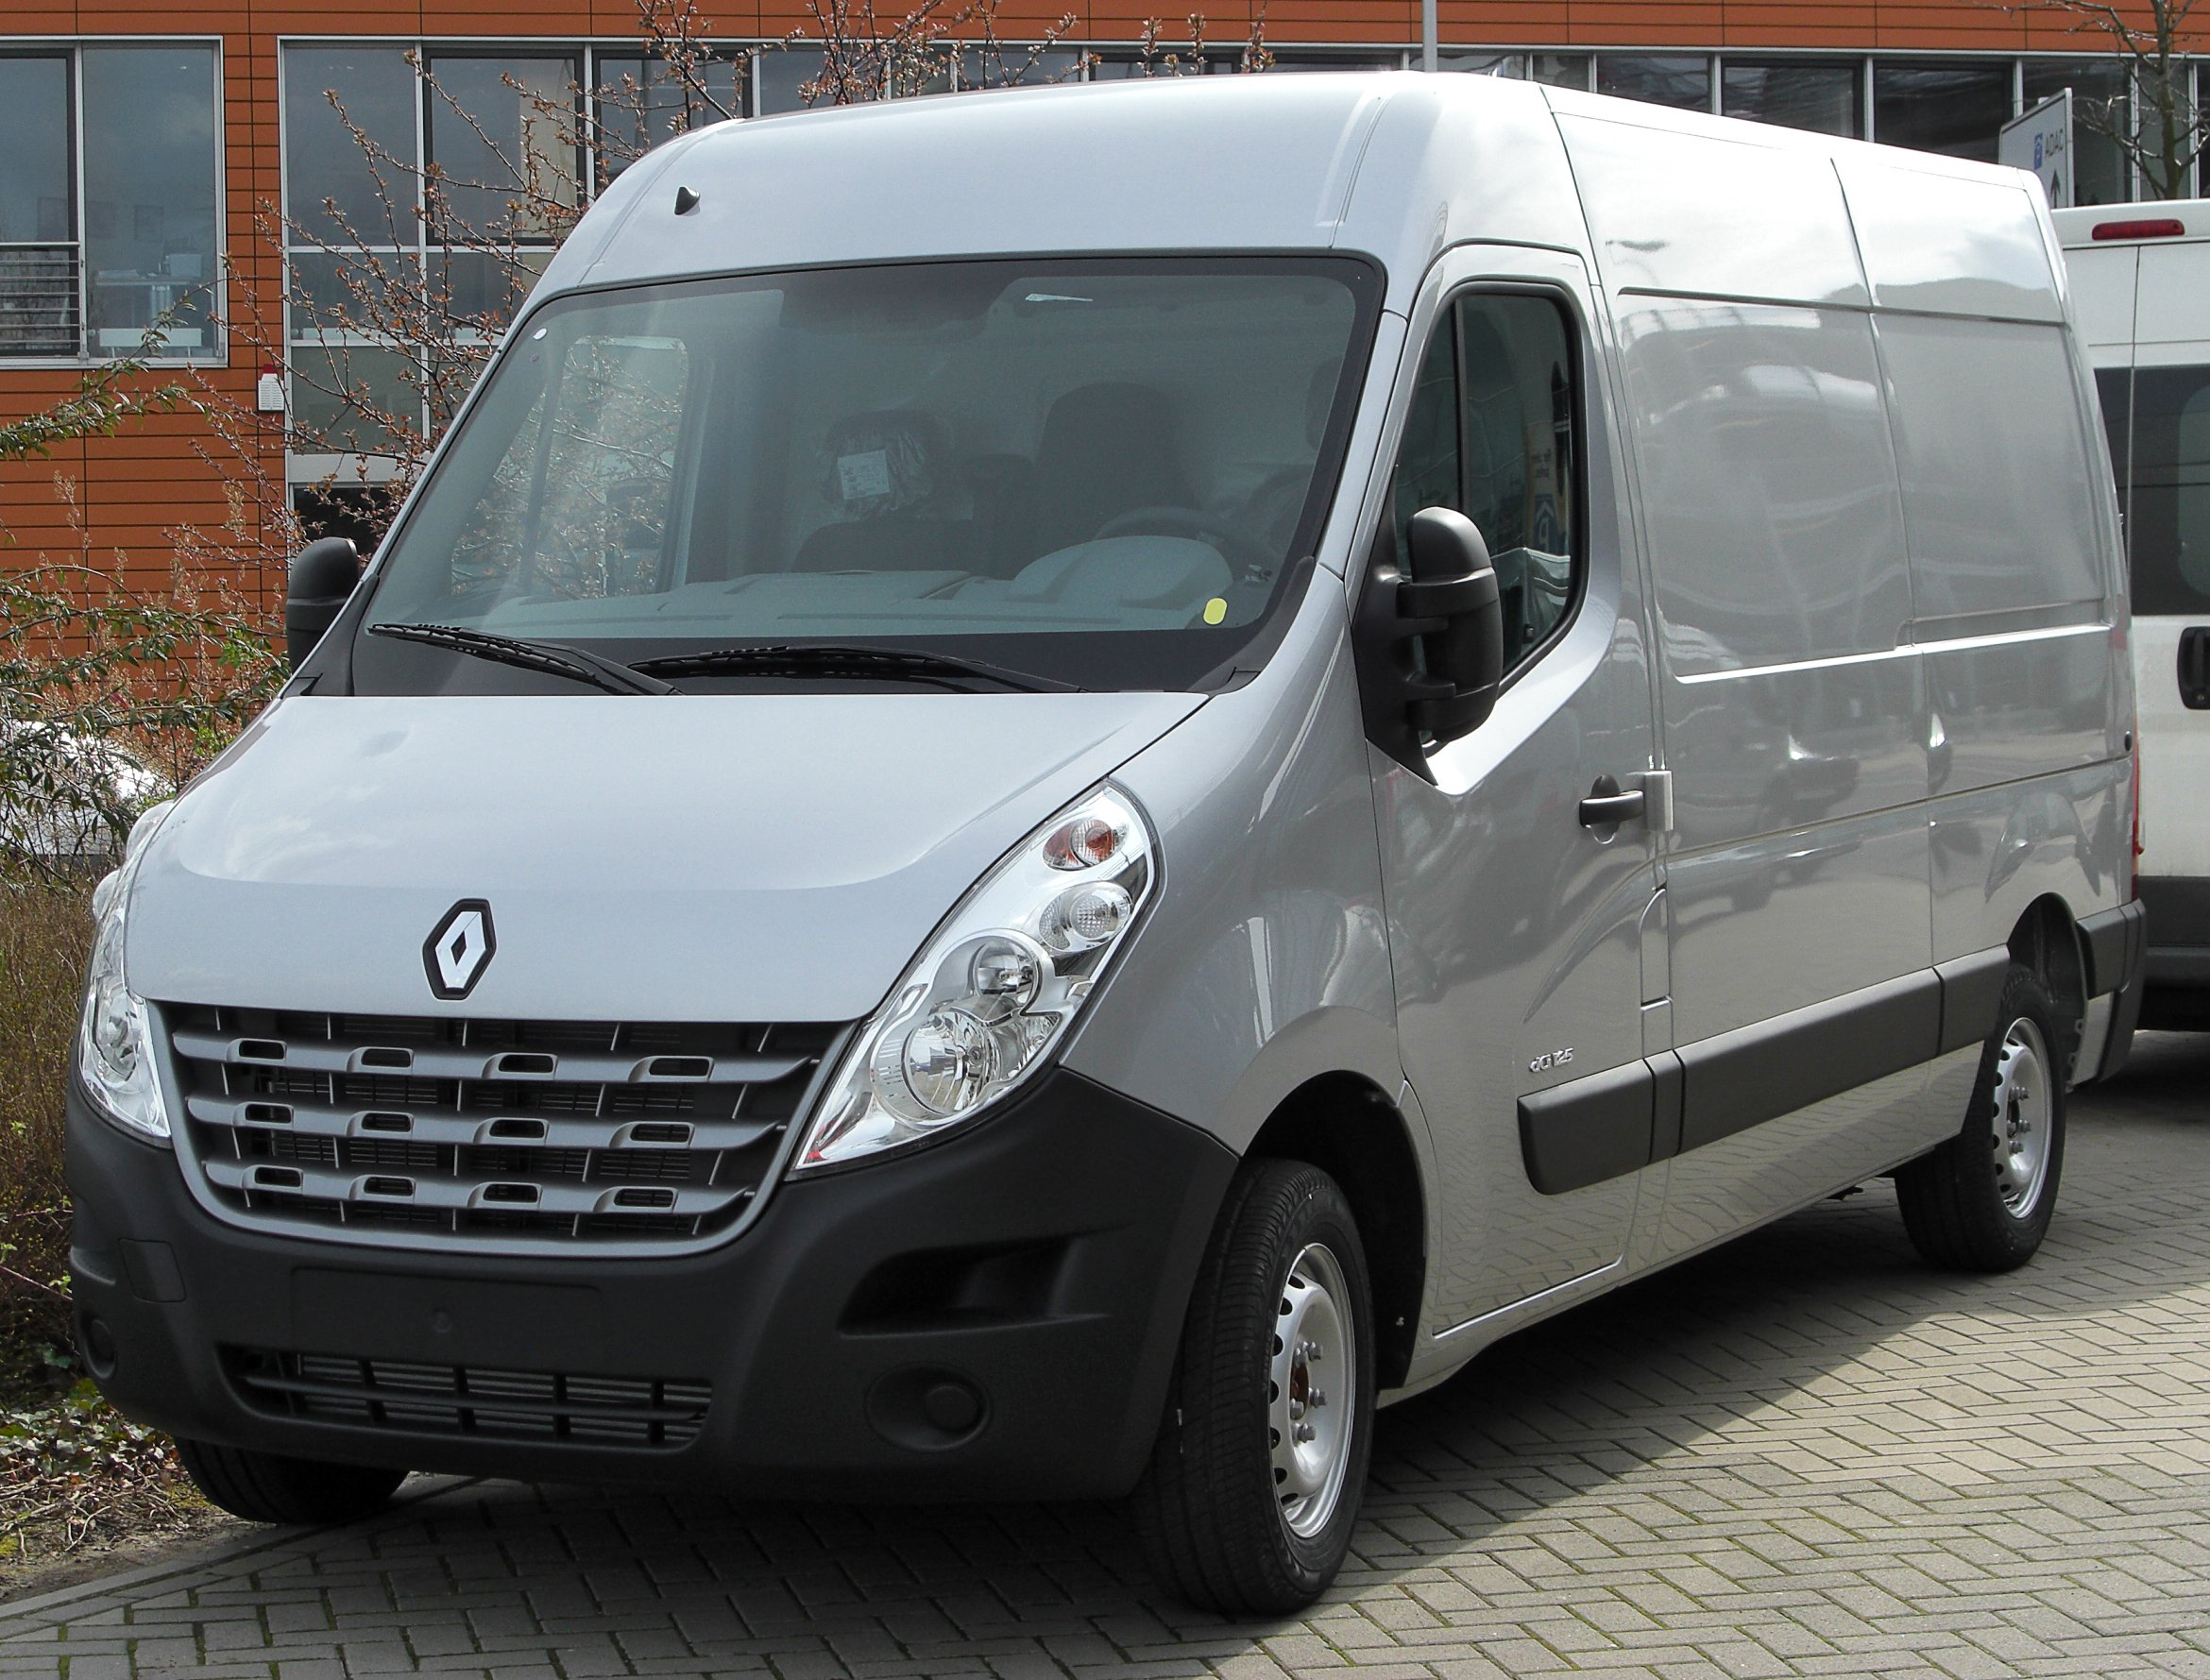 2003 renault master ii pictures information and specs auto. Black Bedroom Furniture Sets. Home Design Ideas